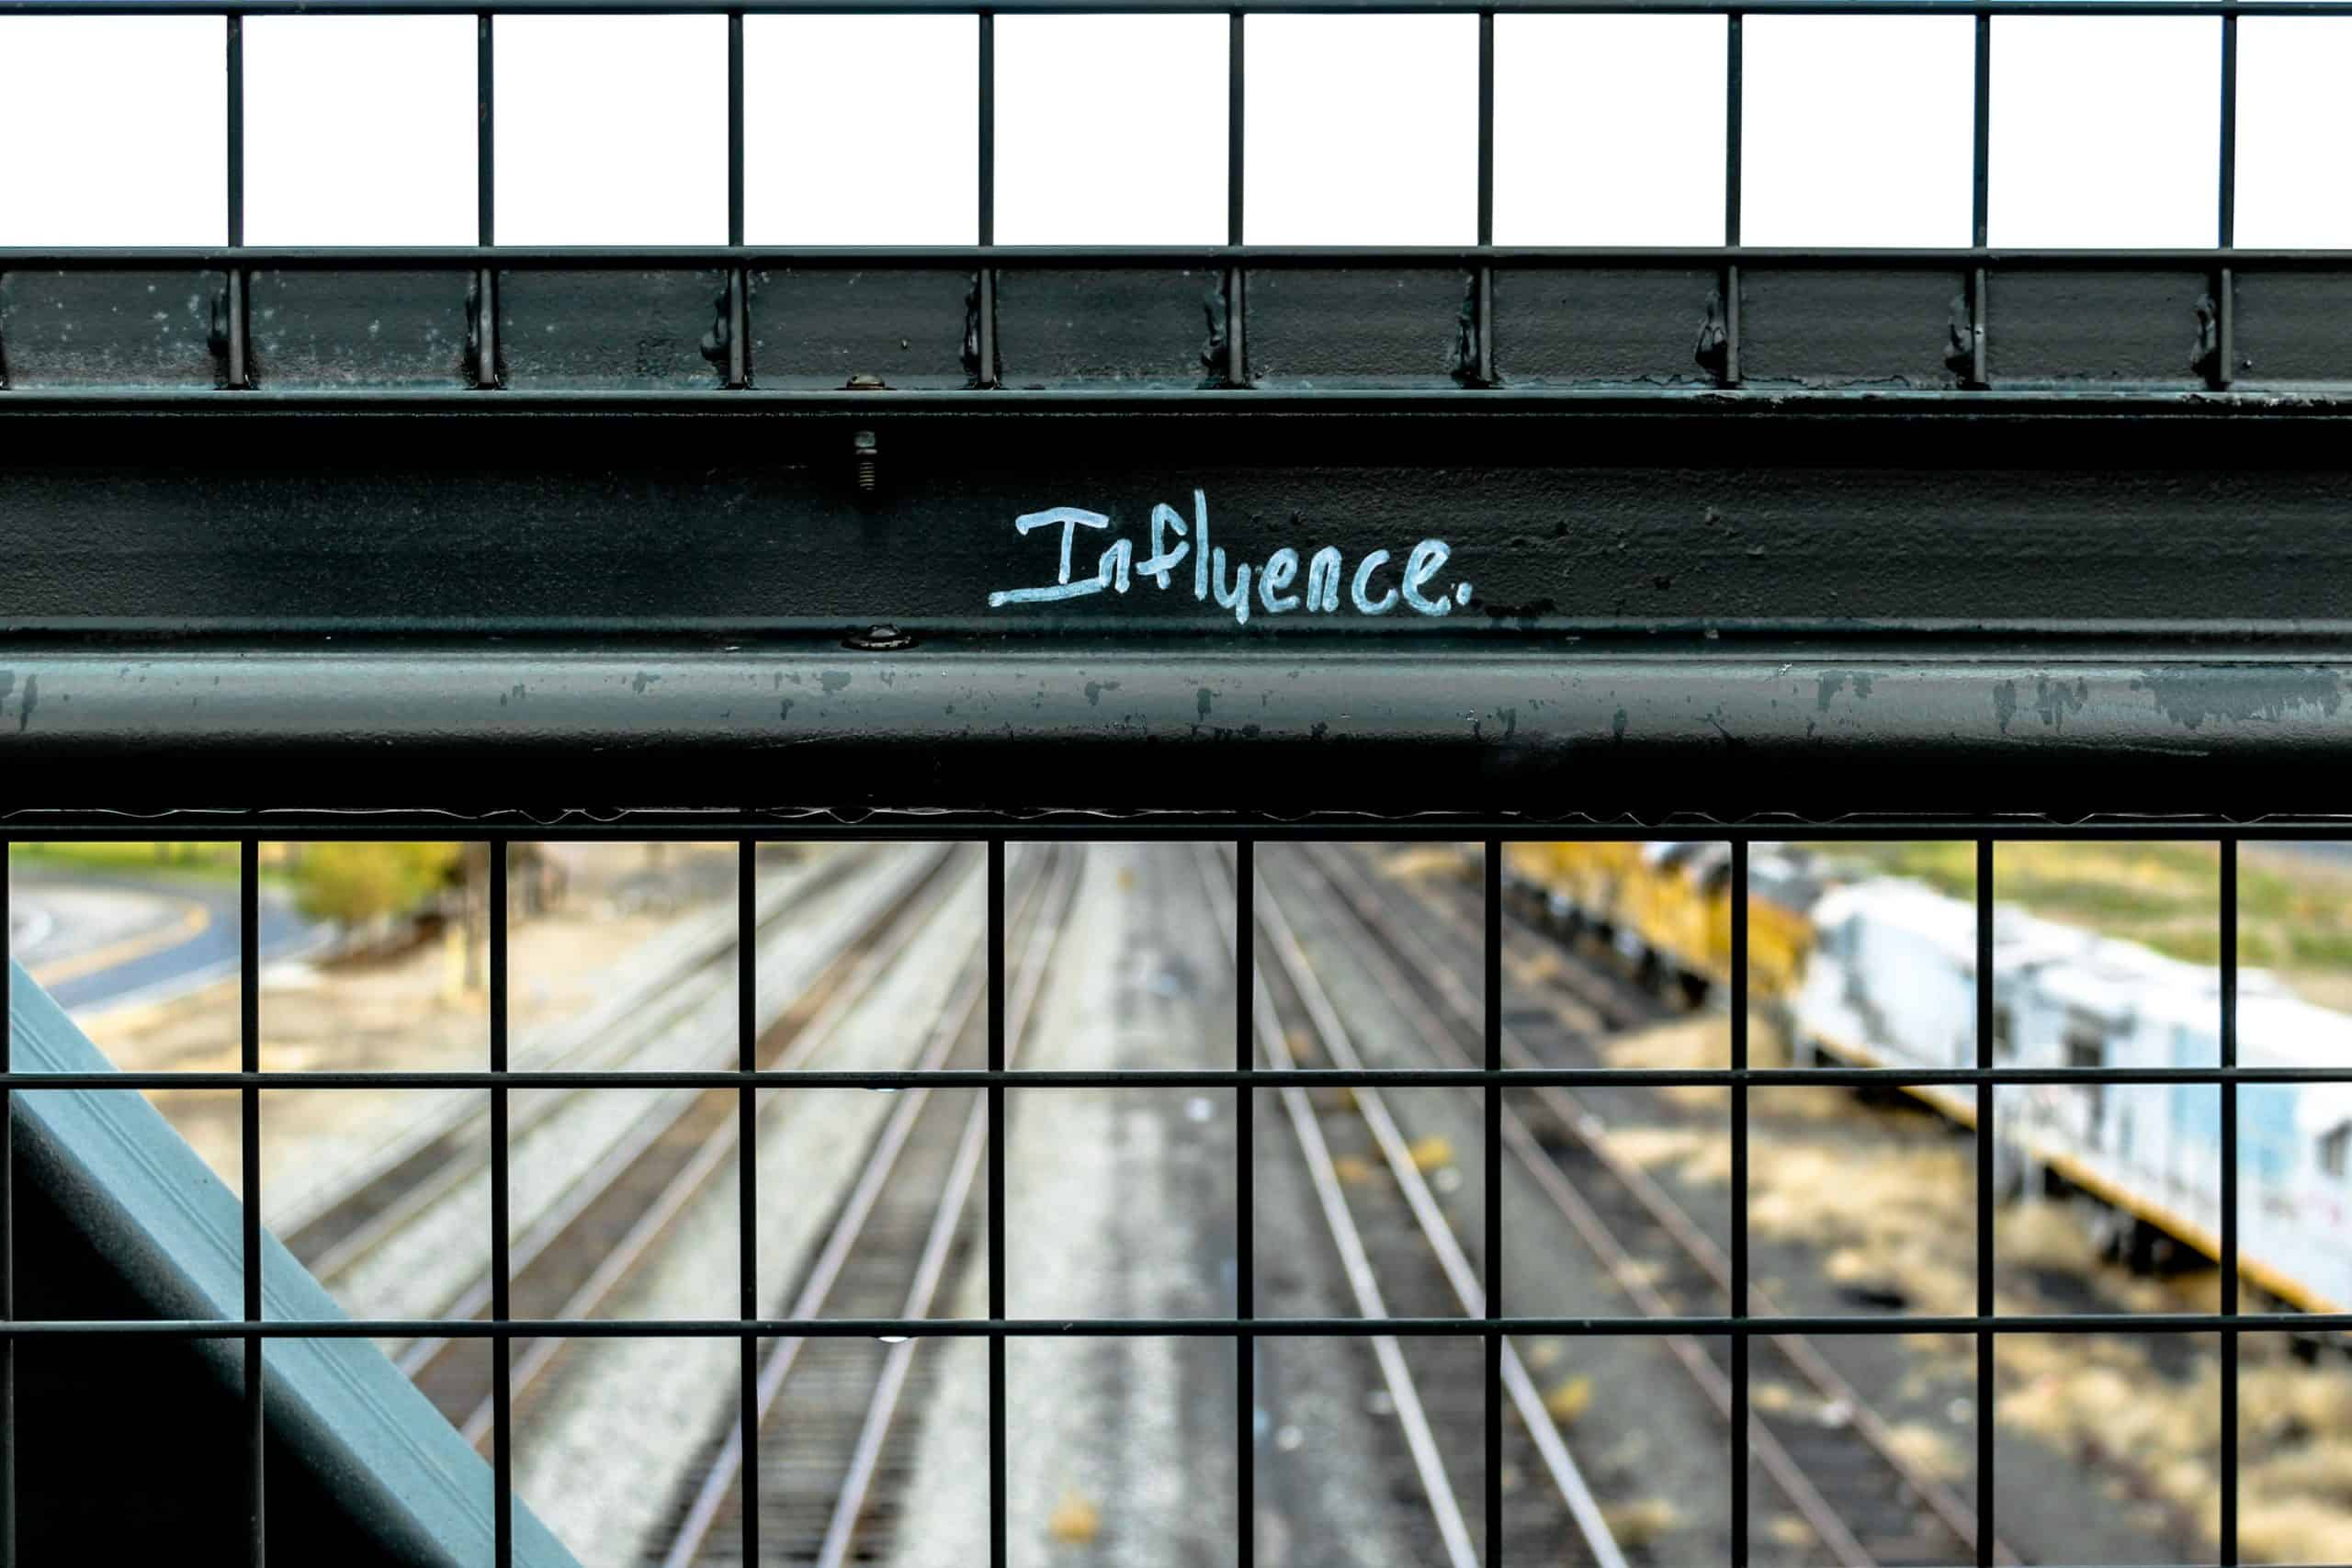 This is a photo of a metal bar for a steel wire fence on a bridge above train tracks. On the bar the word 'Influence' is written.